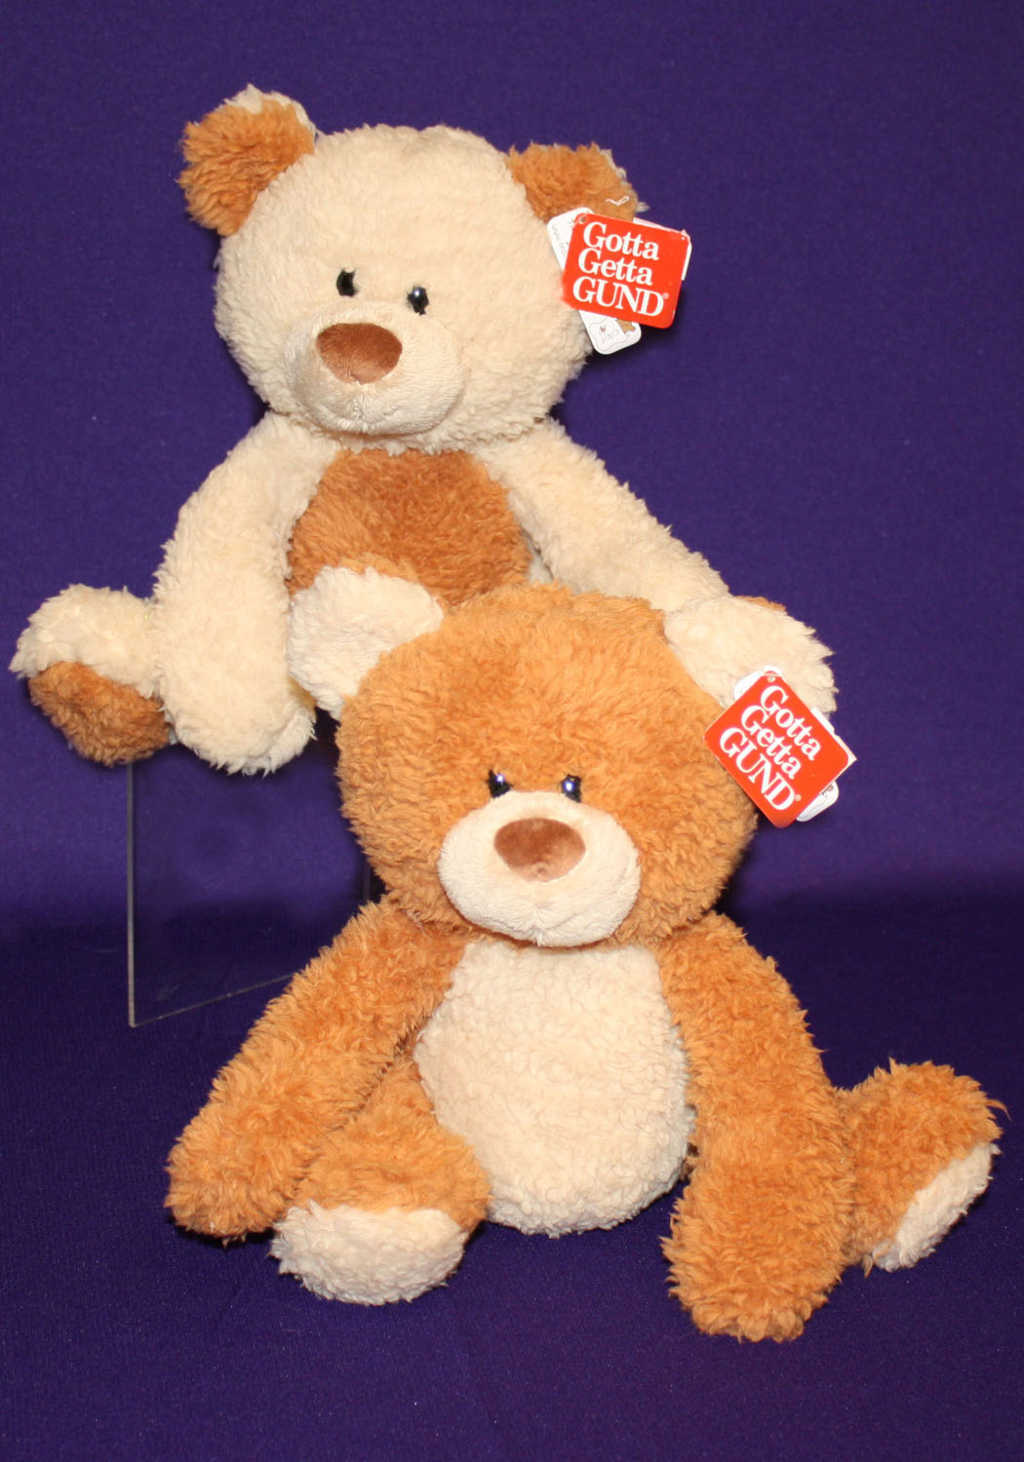 Light brown Plush Toy Bear Available at Mon General Hospital Gift Shop